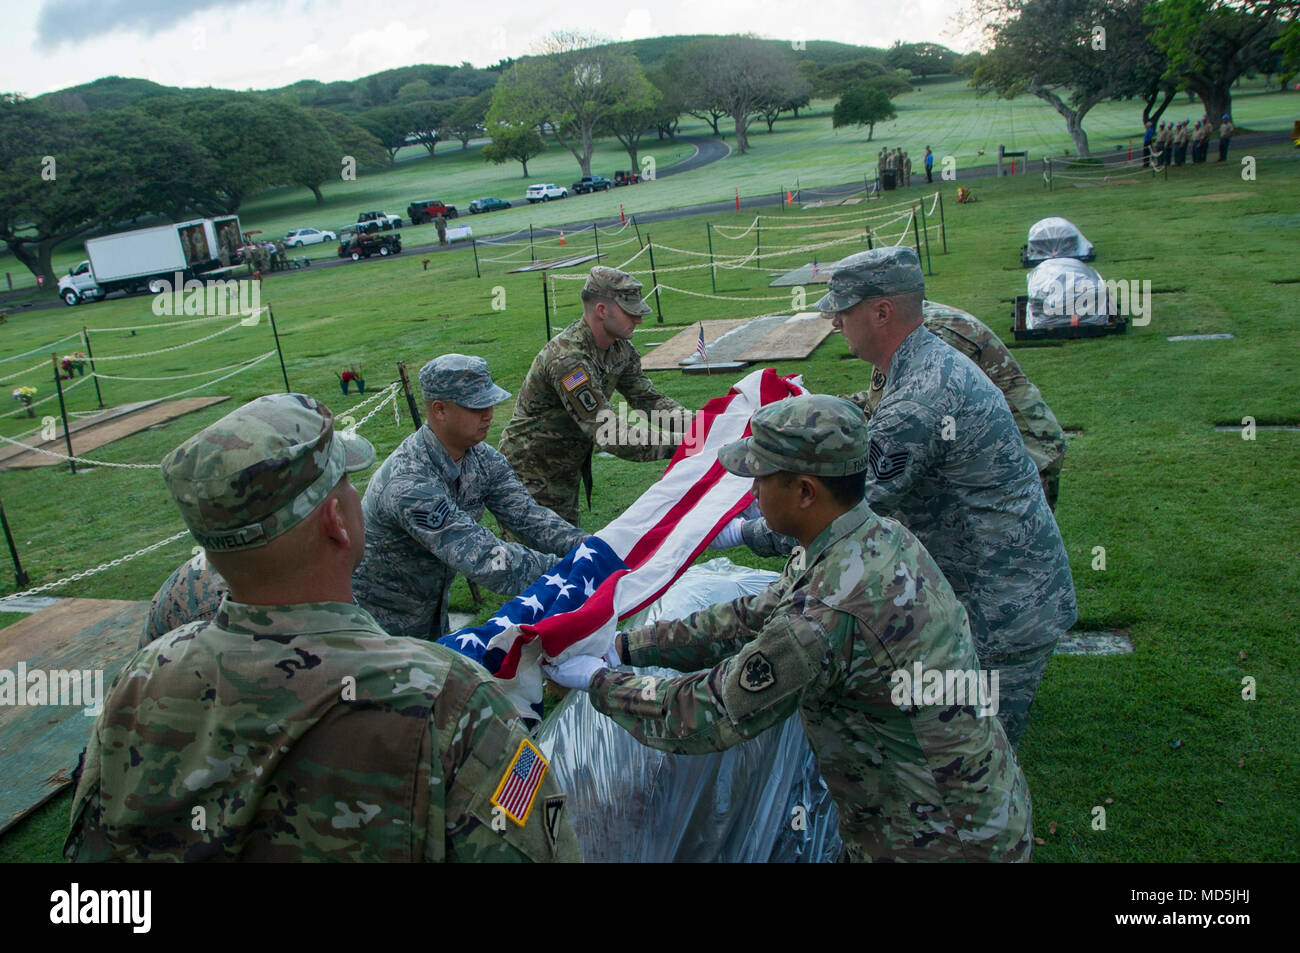 Members of the Defense POW/MIA Accounting Agency (DPAA) drape the colors on to a casket during a disinterment ceremony at the National Memorial Cemetery of the Pacific, Honolulu, Hawaii, March 26, 2018. The remains will be transferred to the DPAA laboratory for analysis and identification. DPAA's mission is to provide the fullest possible accounting of our missing personnel to their families and the nation. (U.S. Air Force photo by Senior Airman Apryl Hall) - Stock Image